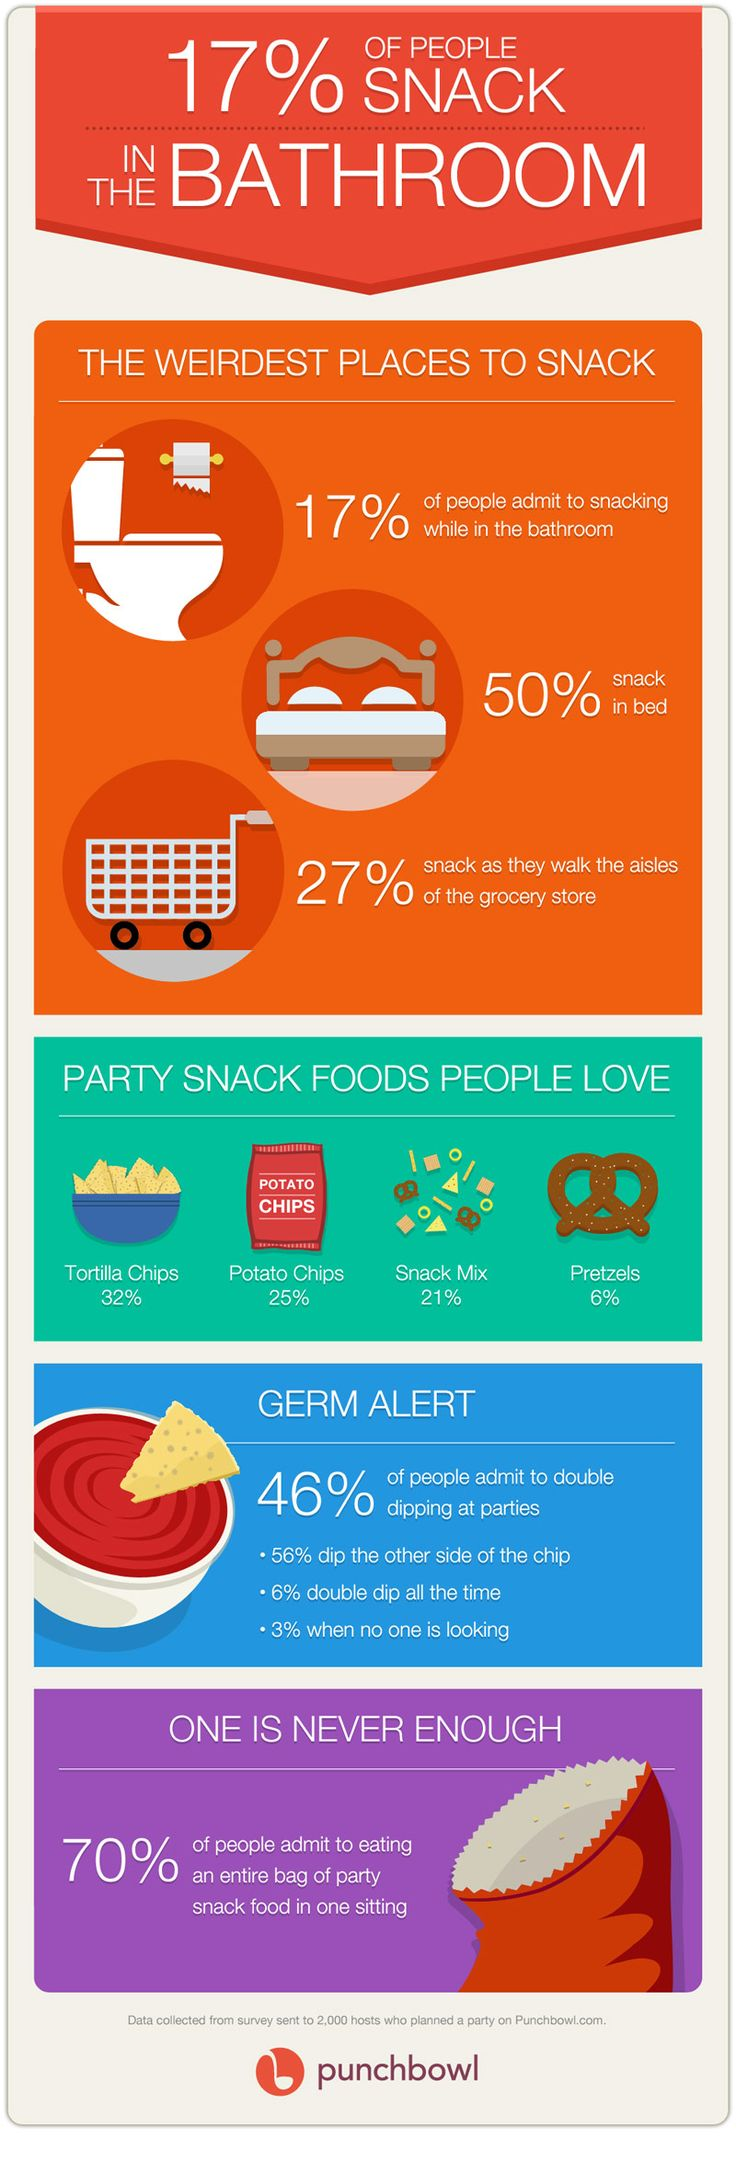 17% of people snack in the bathroom  http://www.punchbowl.com/trends/white-papers/mix-mingle-15-ways-snack-brands-can-be-the-life-of-the-party